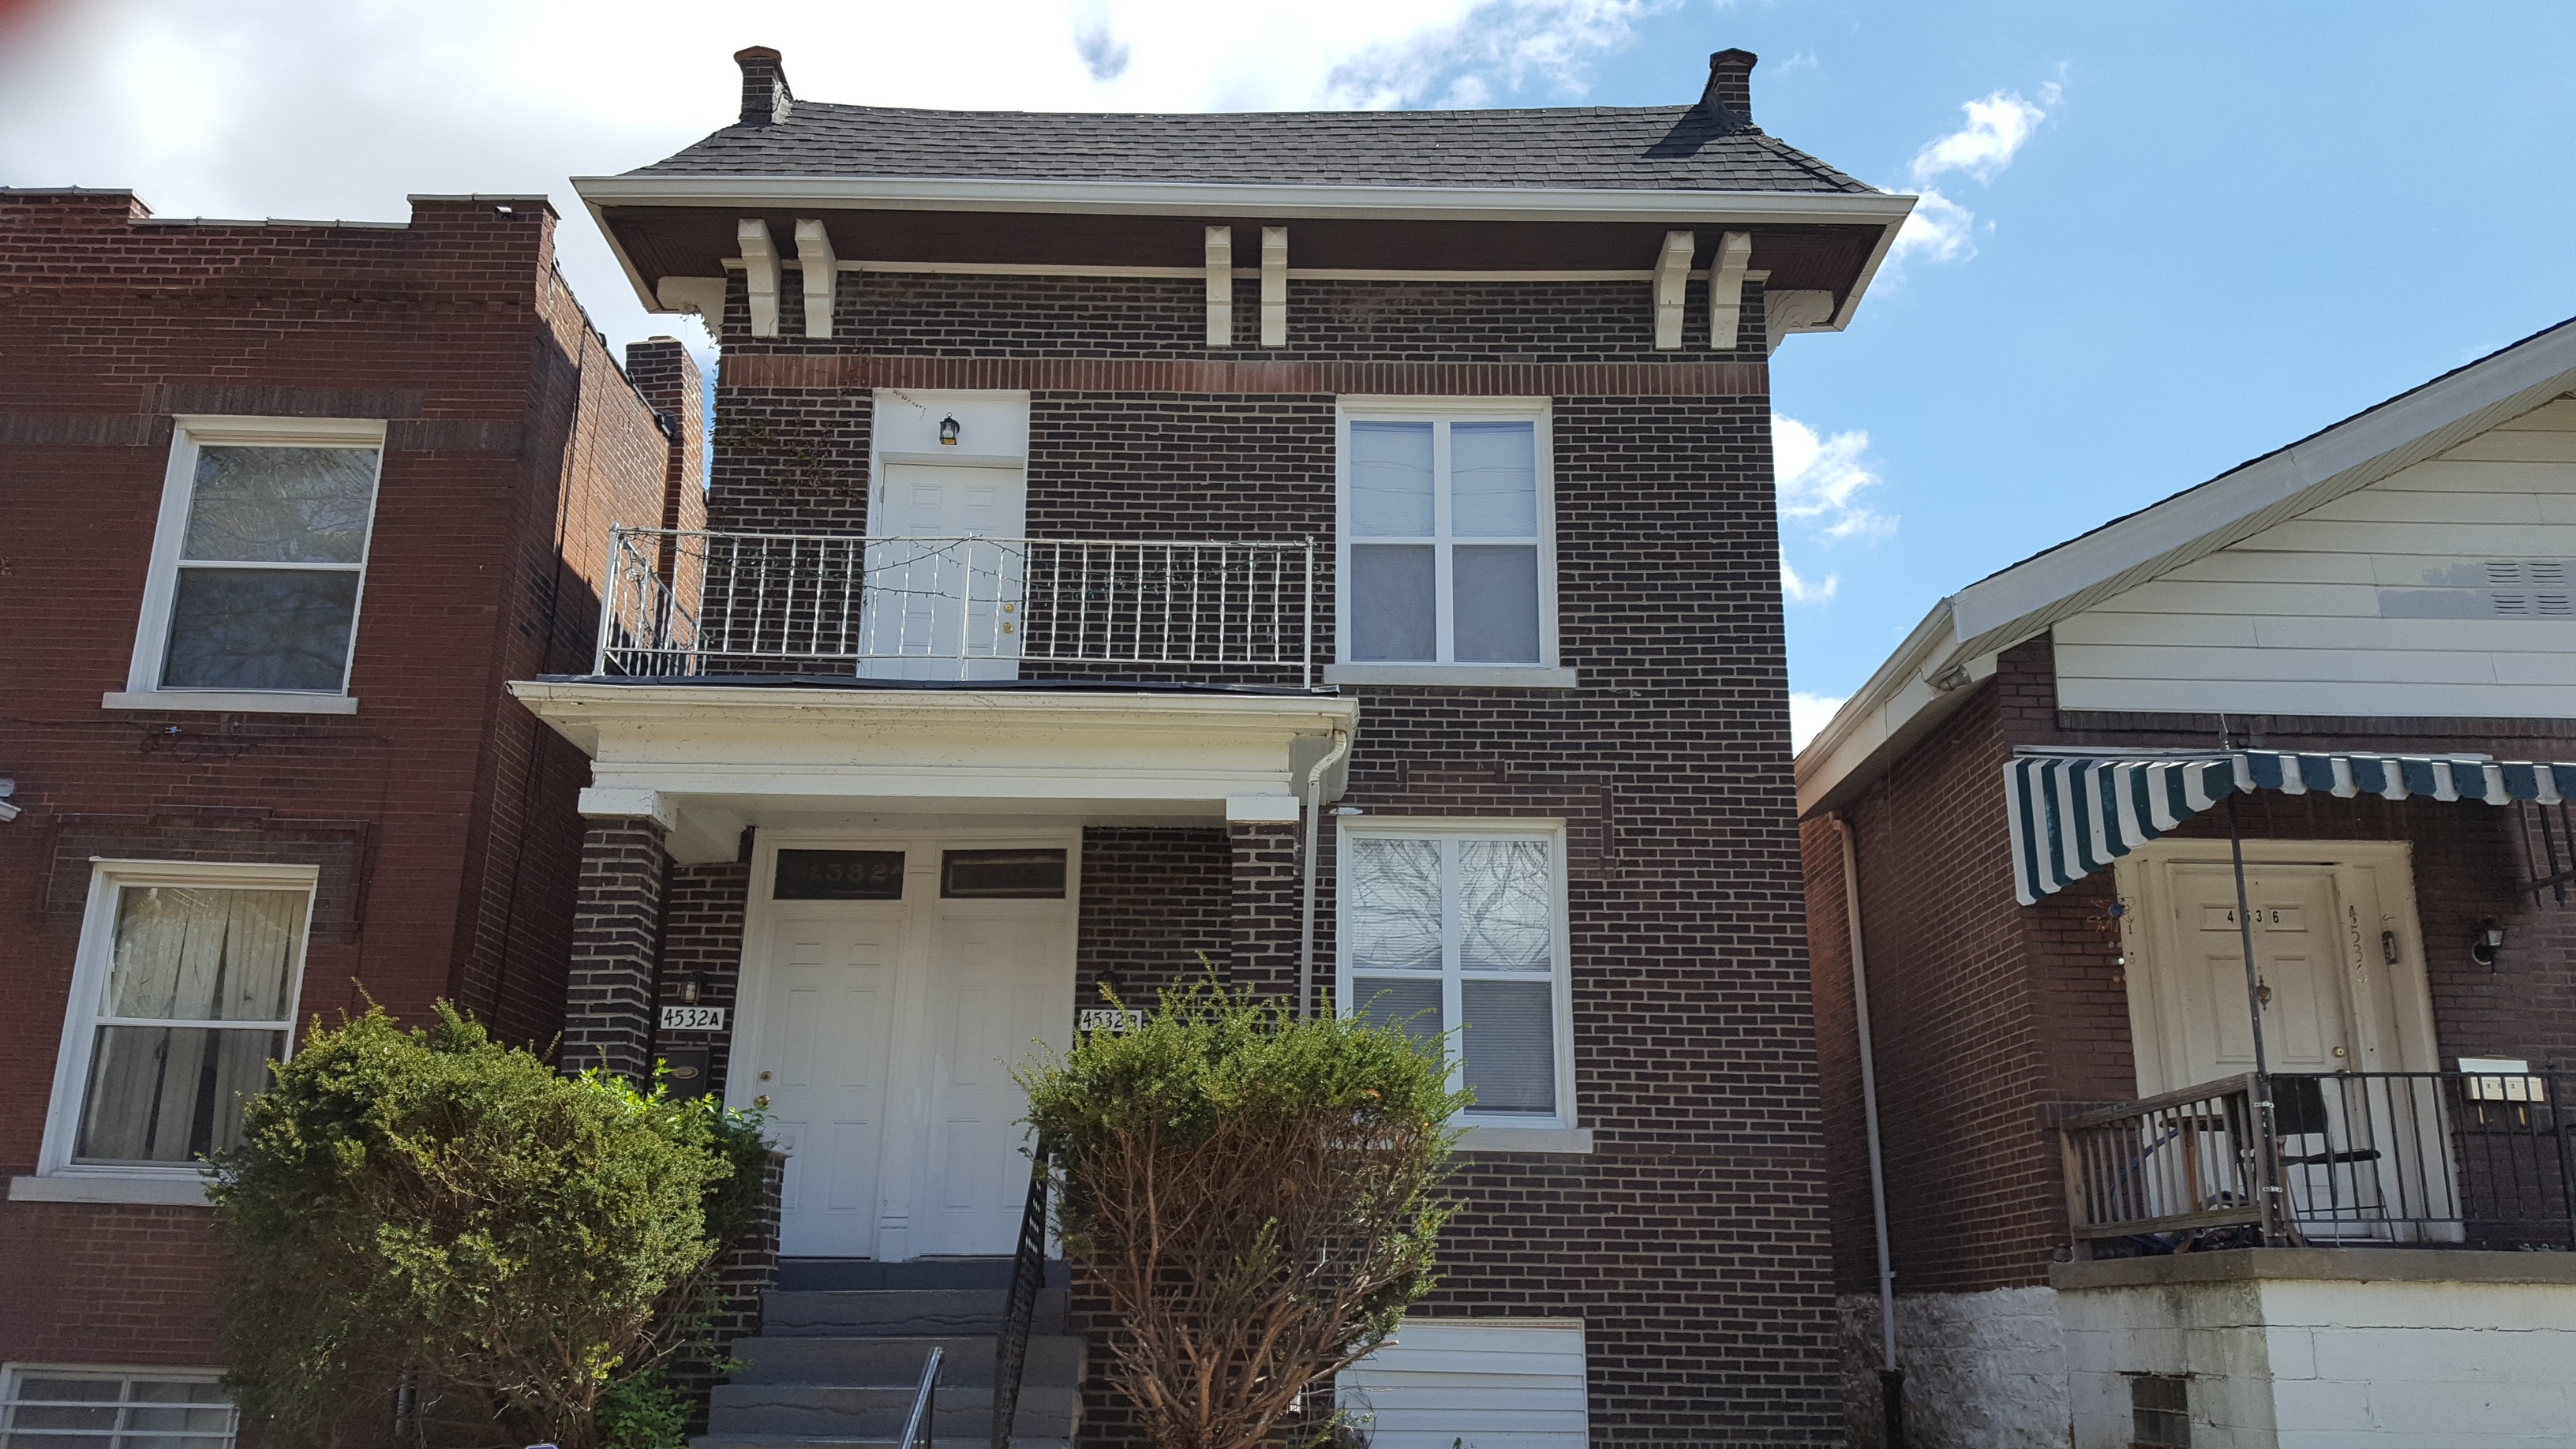 4532 pennsylvania ave st louis mo 63118 1 bedroom apartment for rent for 525 month zumper